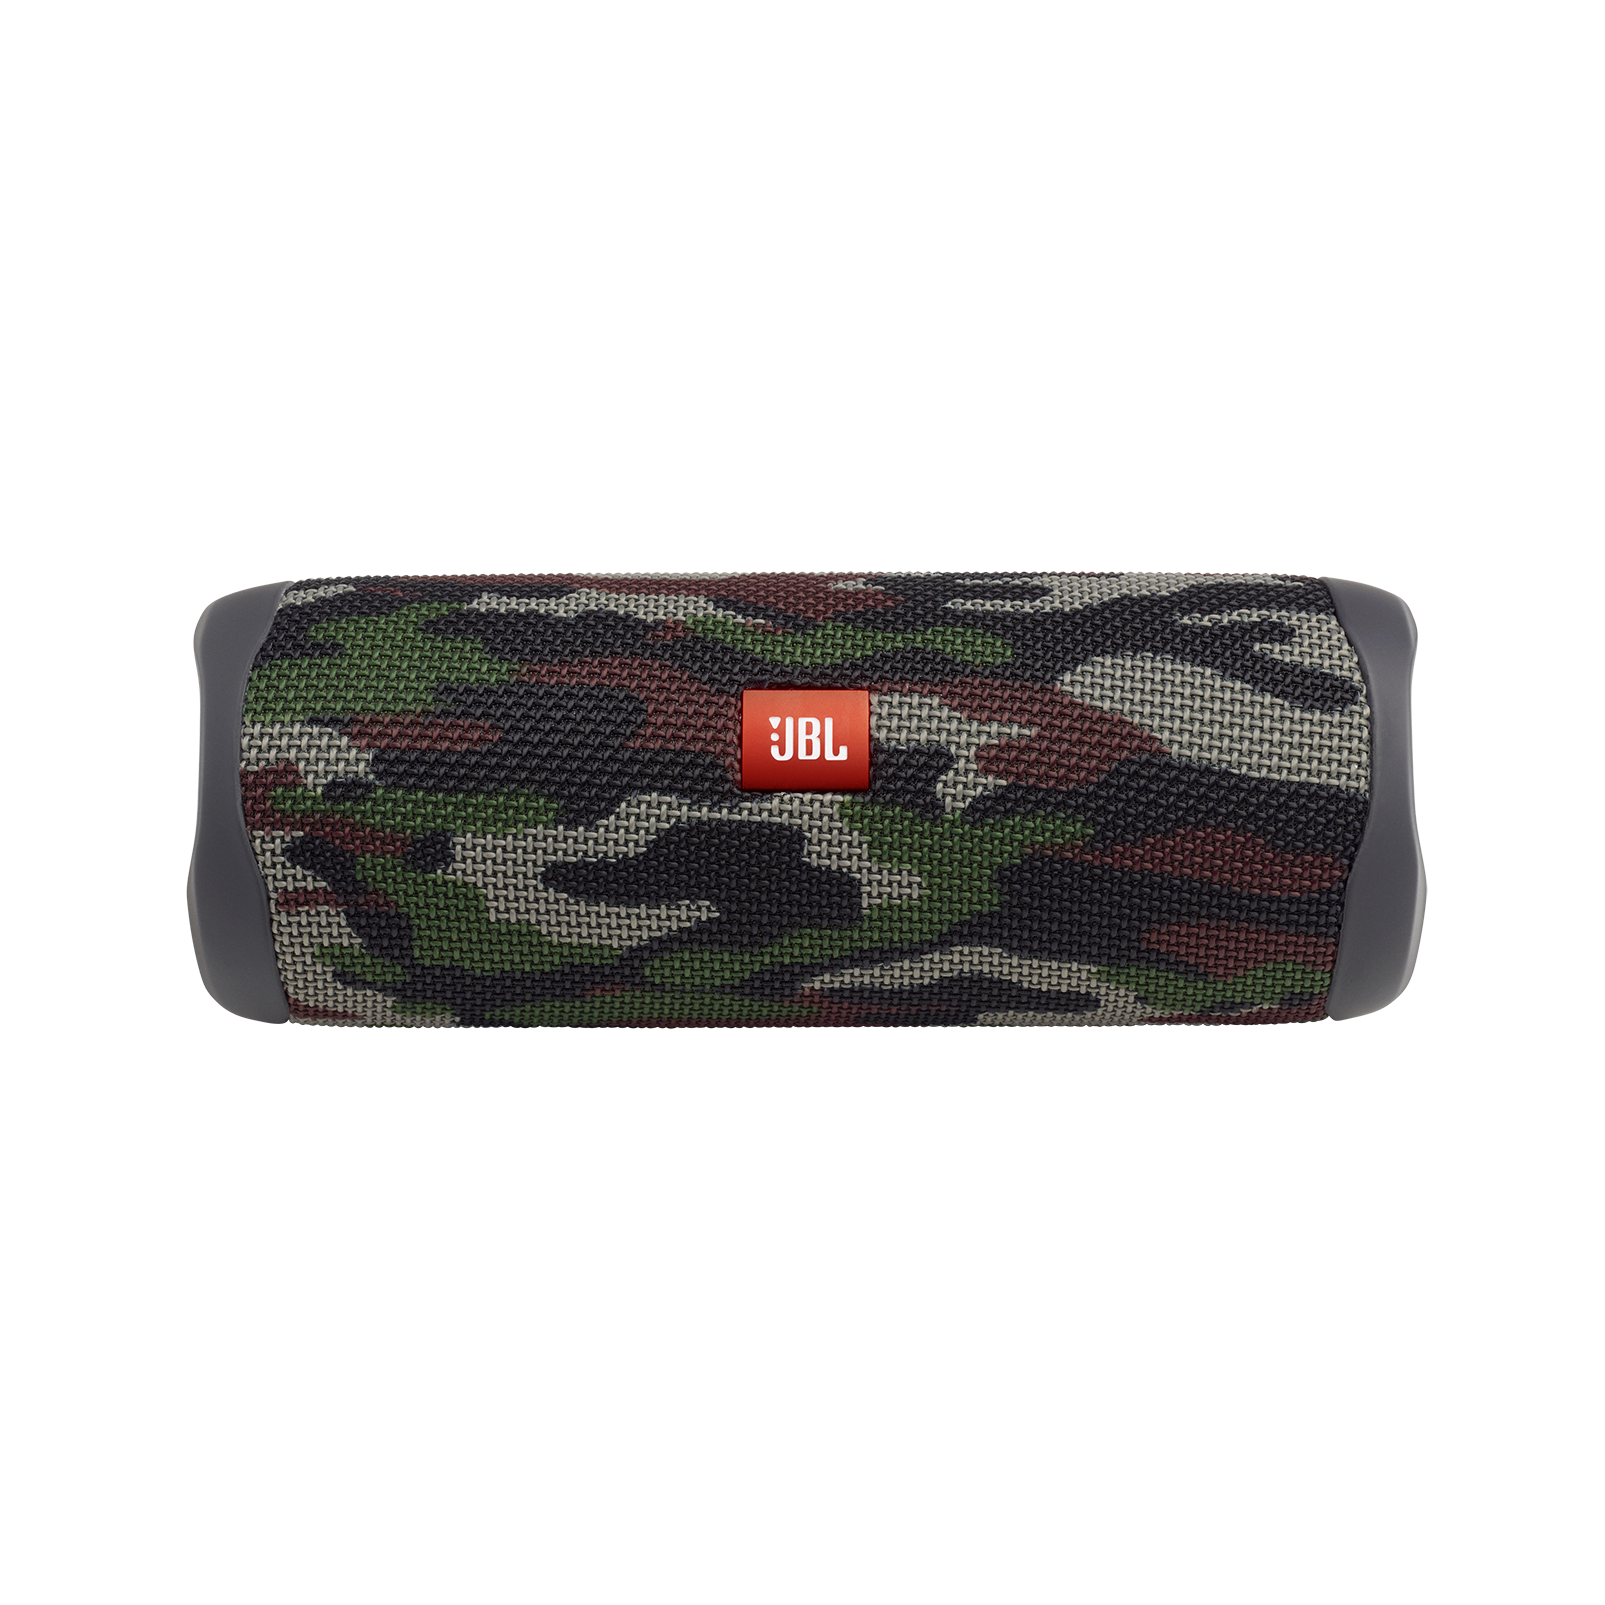 JBL FLIP 5 - Squad - Portable Waterproof Speaker - Front